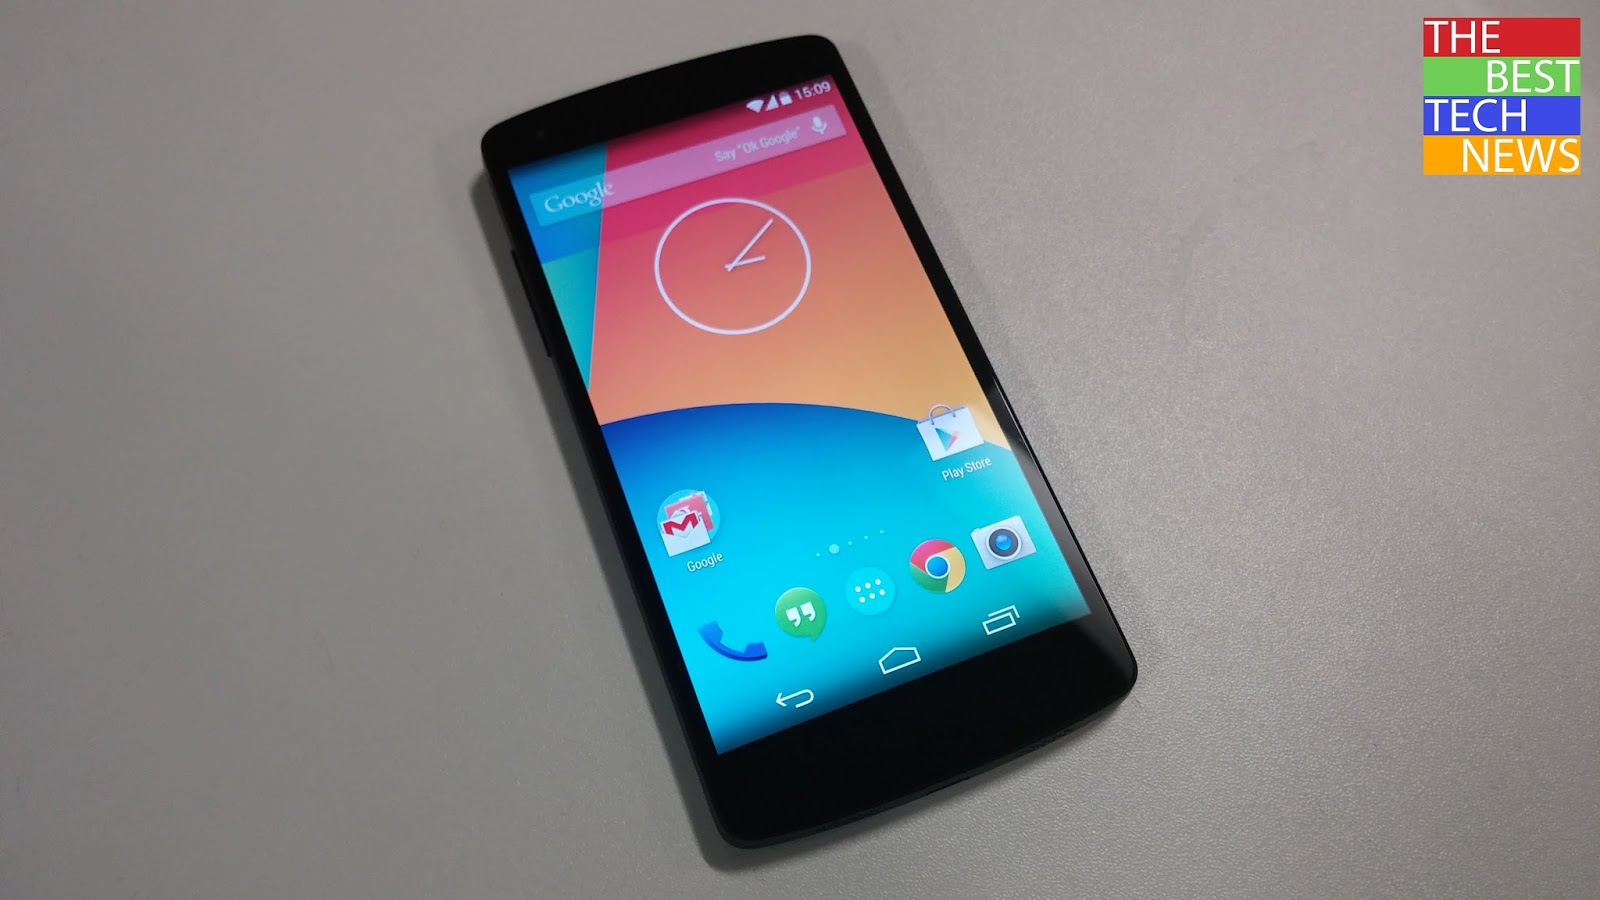 Somemon Issue Of Nexus 5 And How To Fix Them